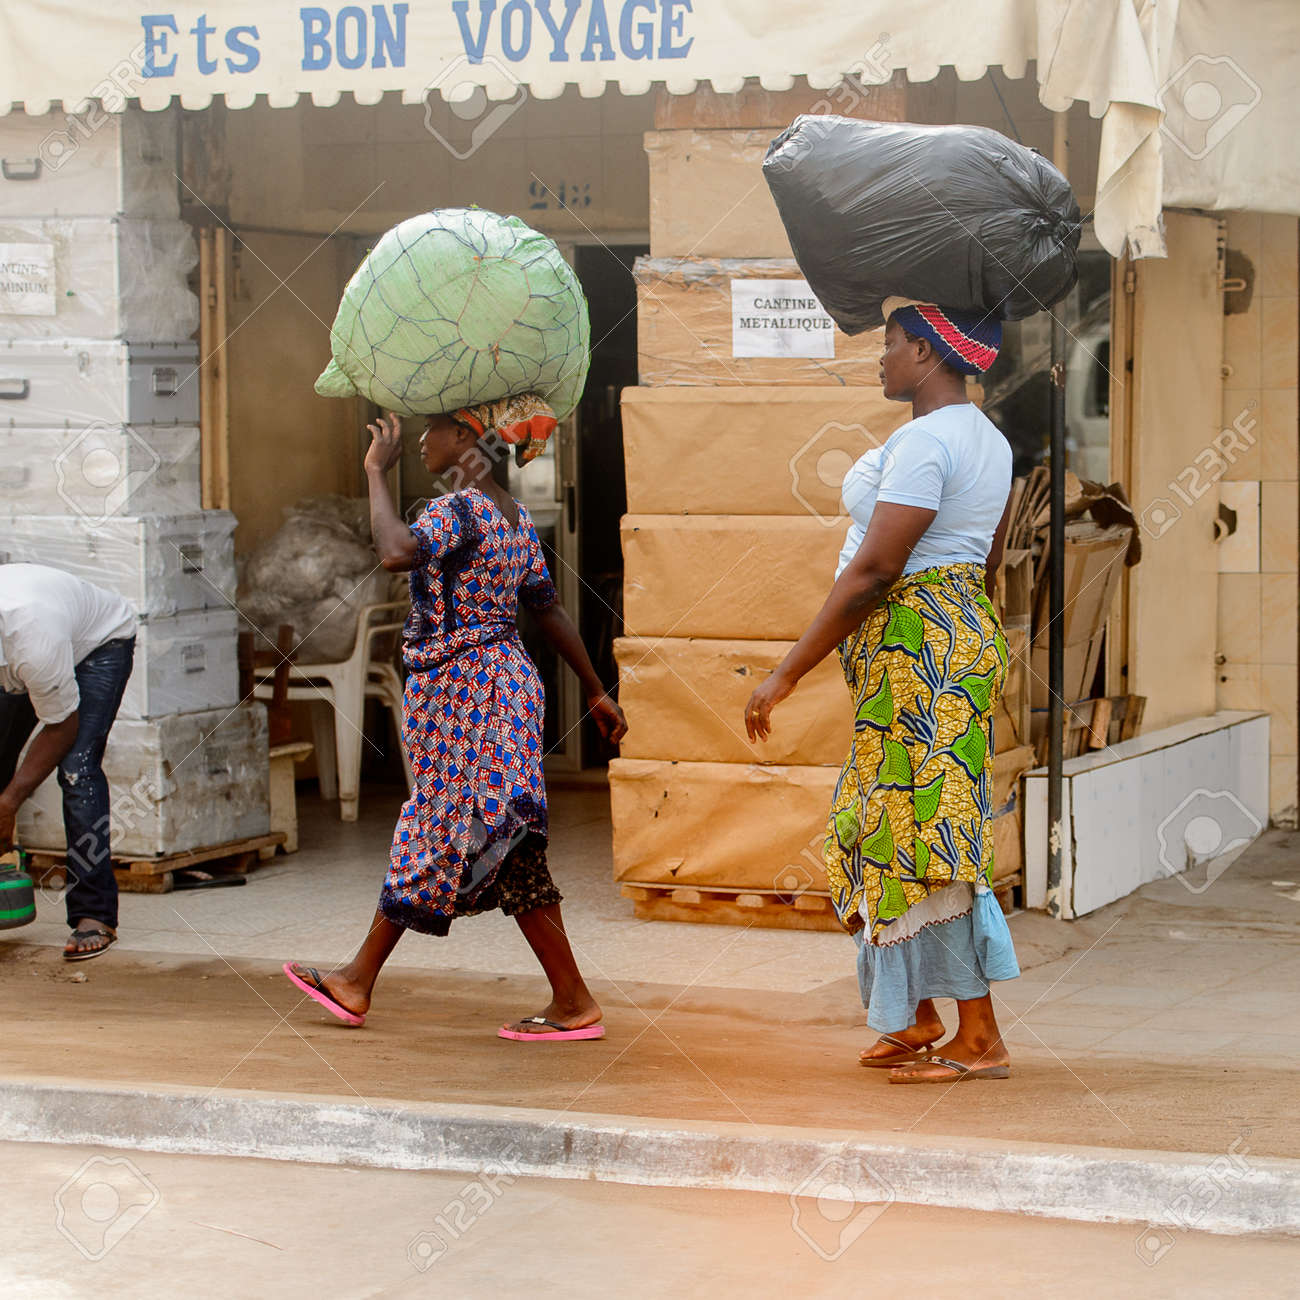 Cantine De Voyage Metallique lome, togo - jan 9, 2017: unidentified togolese woman carries..